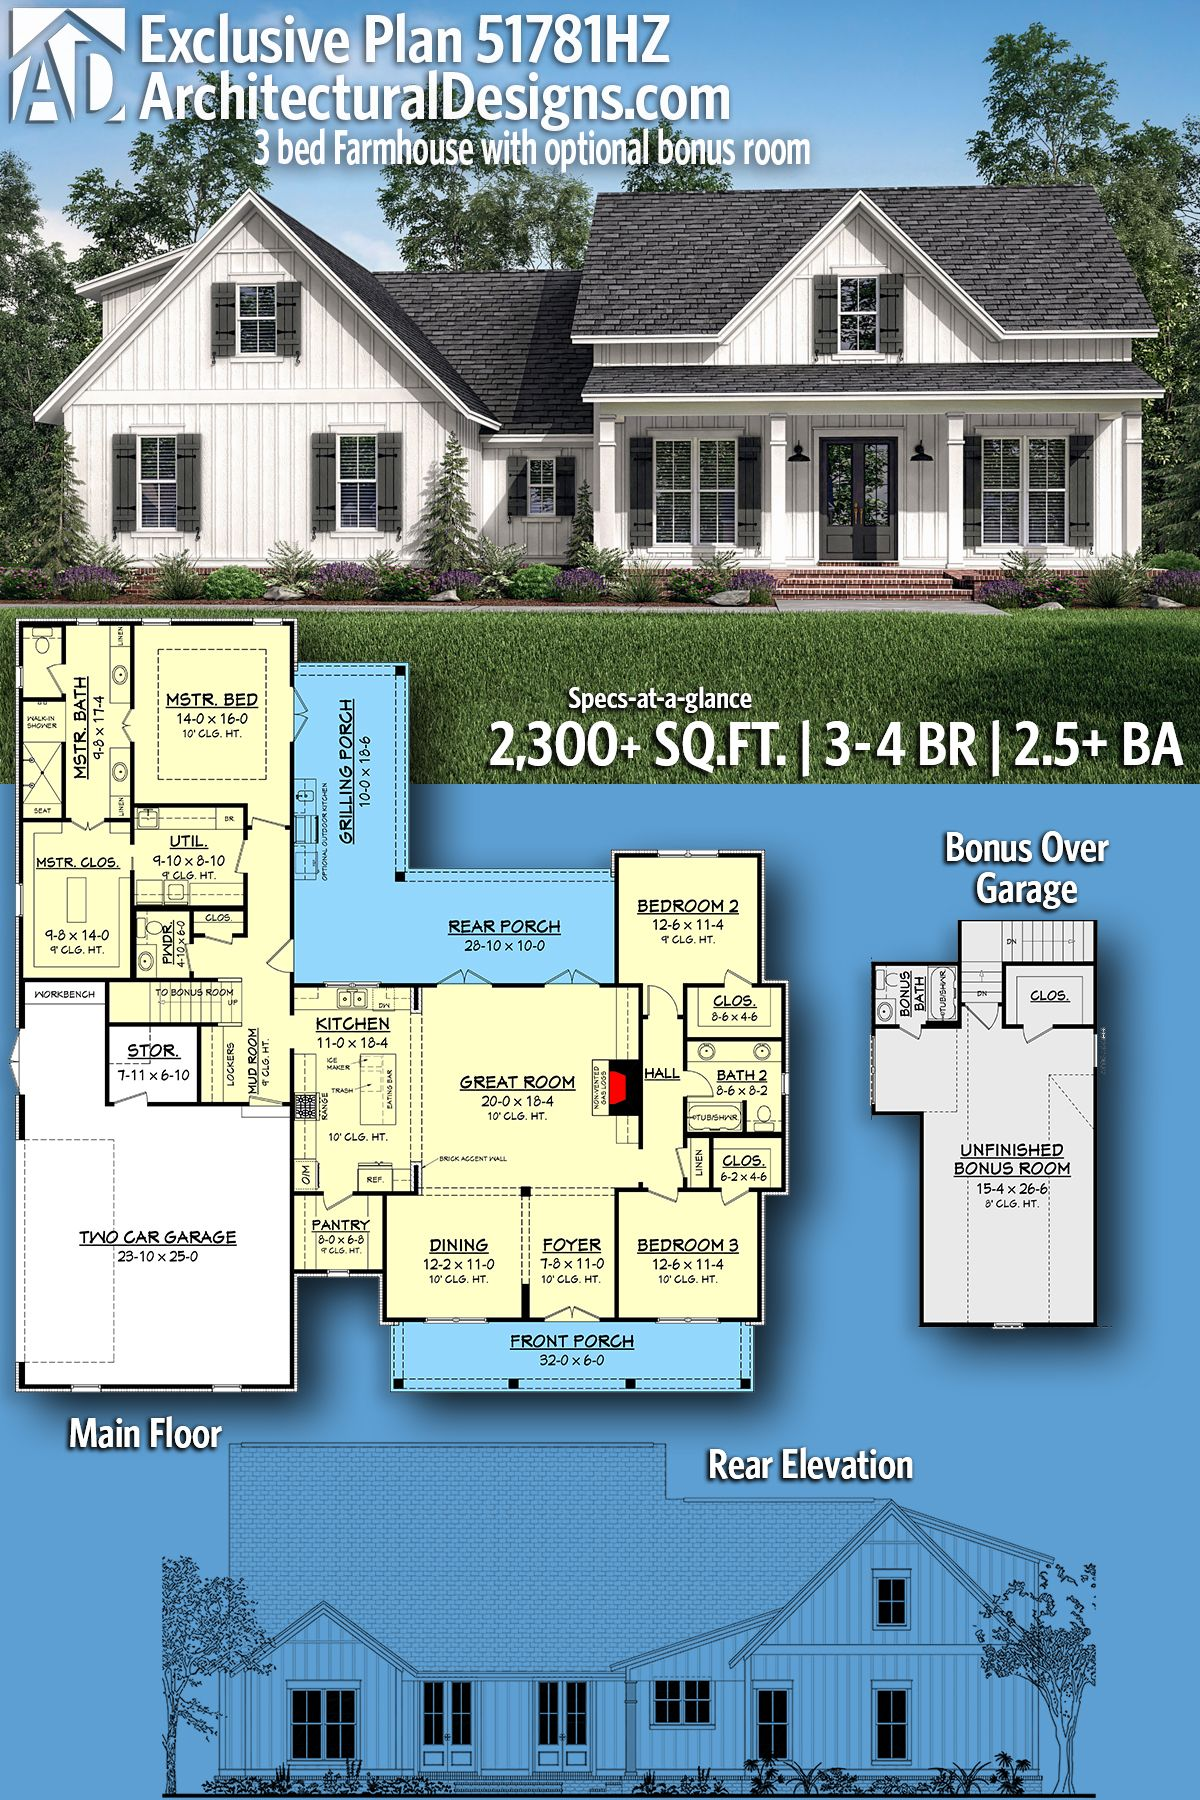 Plan 51781HZ: Exclusive 3 Bed Farmhouse Plan with Optional Bonus Room – Floor Plans